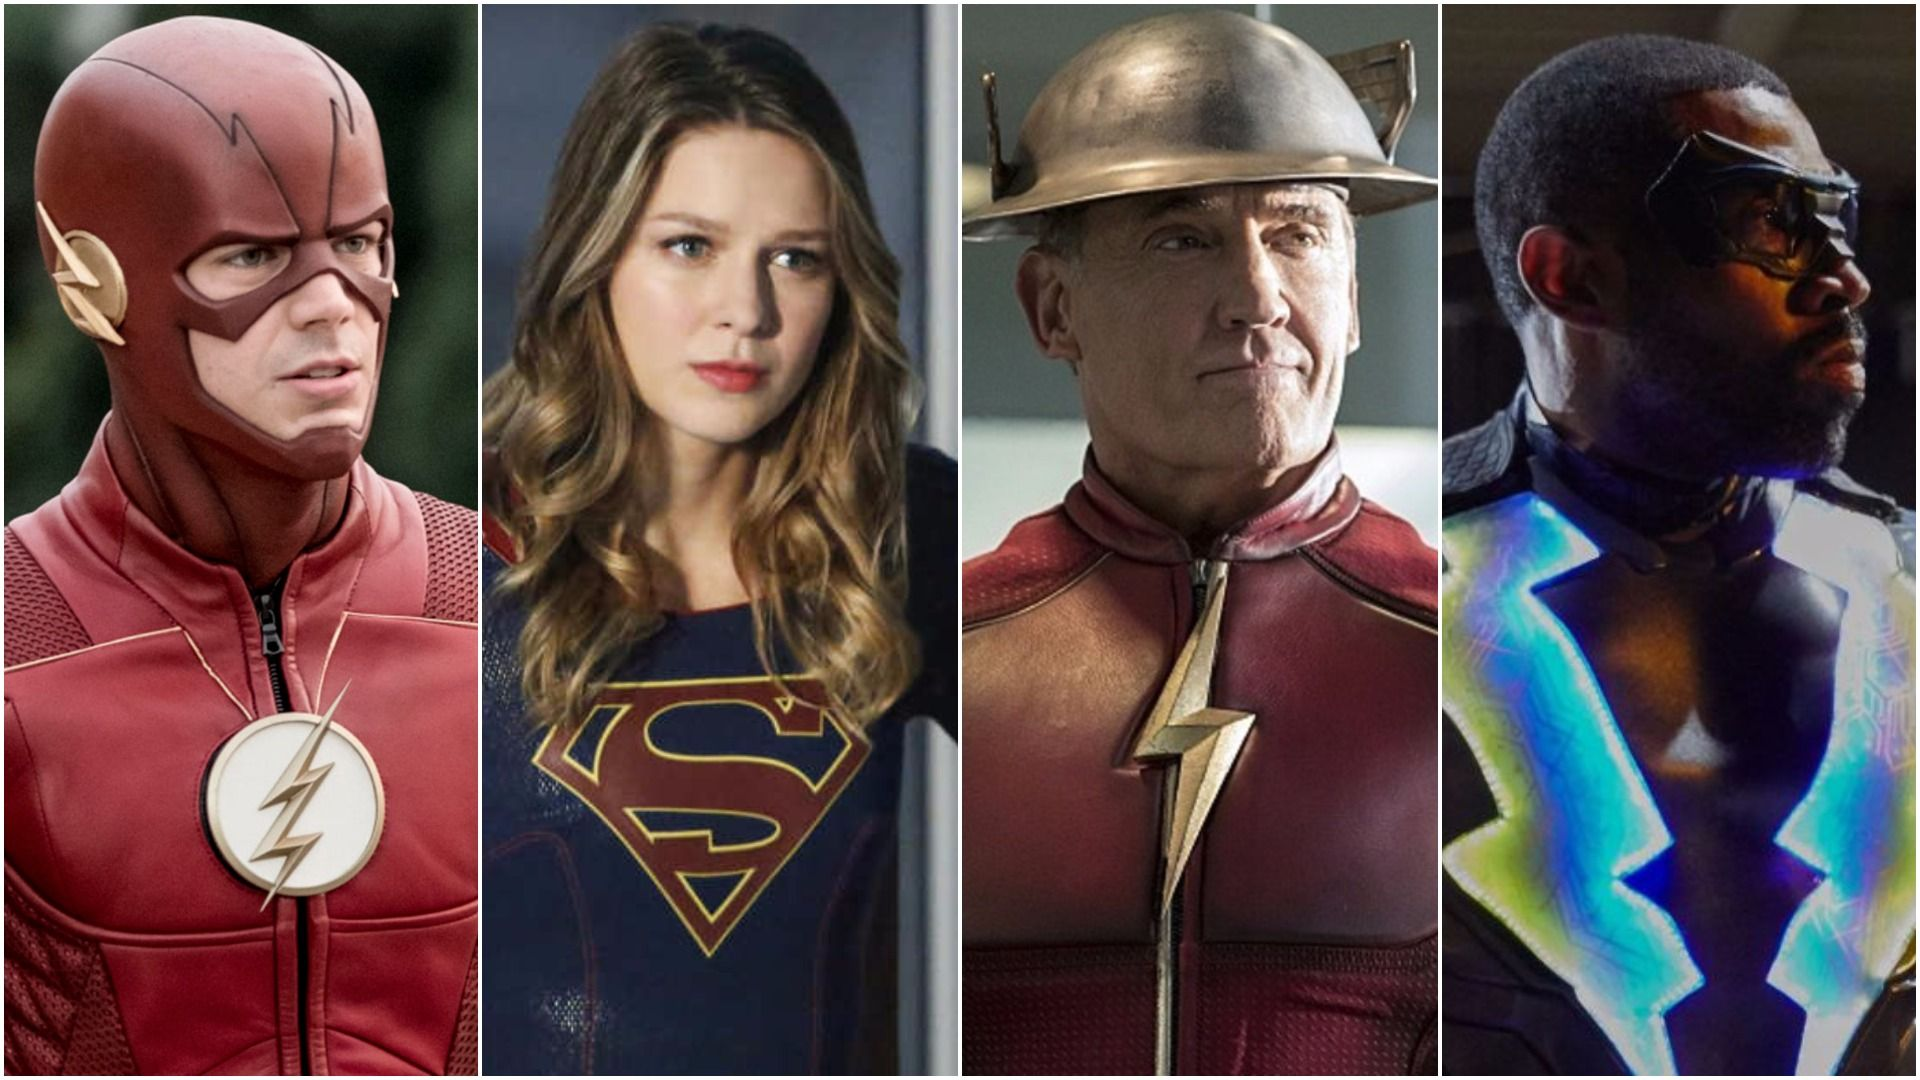 3 Flash Dc Tv Universe Explained How The Flash Supergirl Arrow And